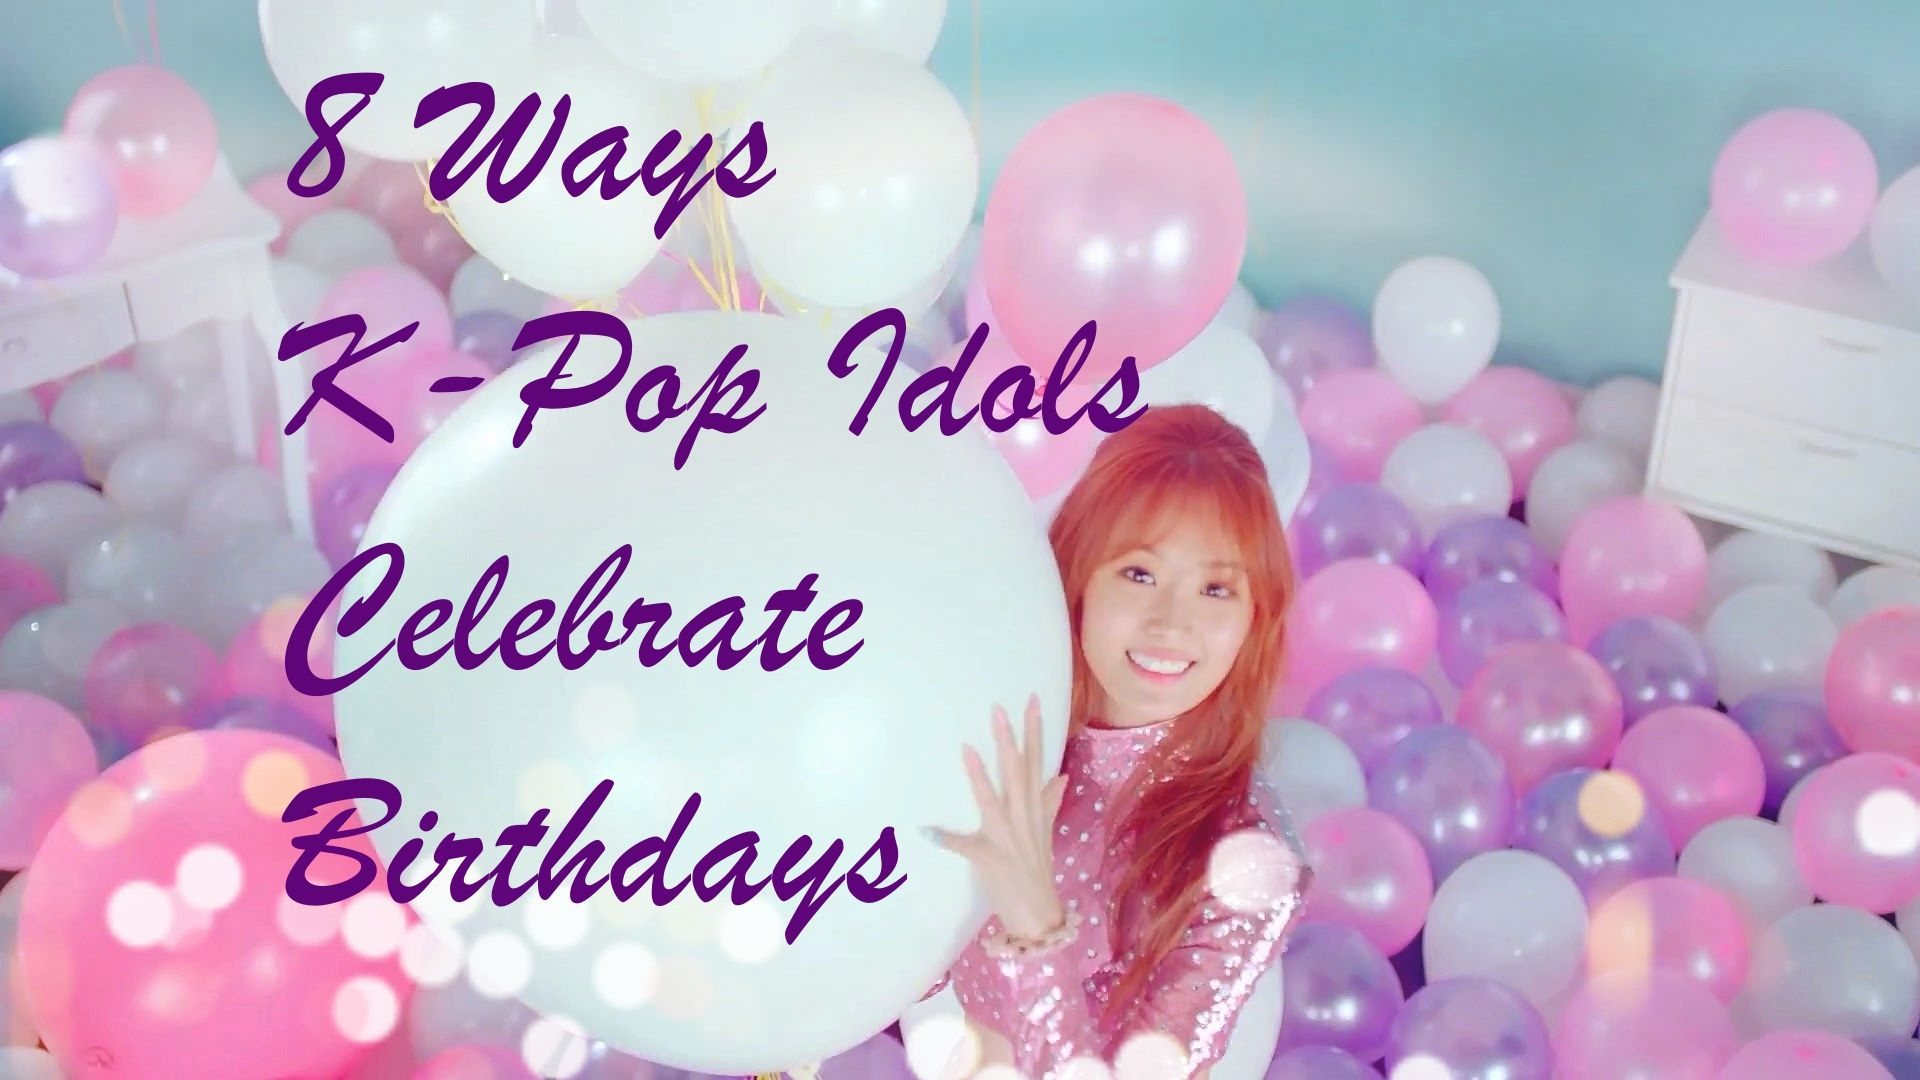 8 Ways K Pop Idols Celebrate Birthdays Birthday Celebration Birthdays Kpop Idol